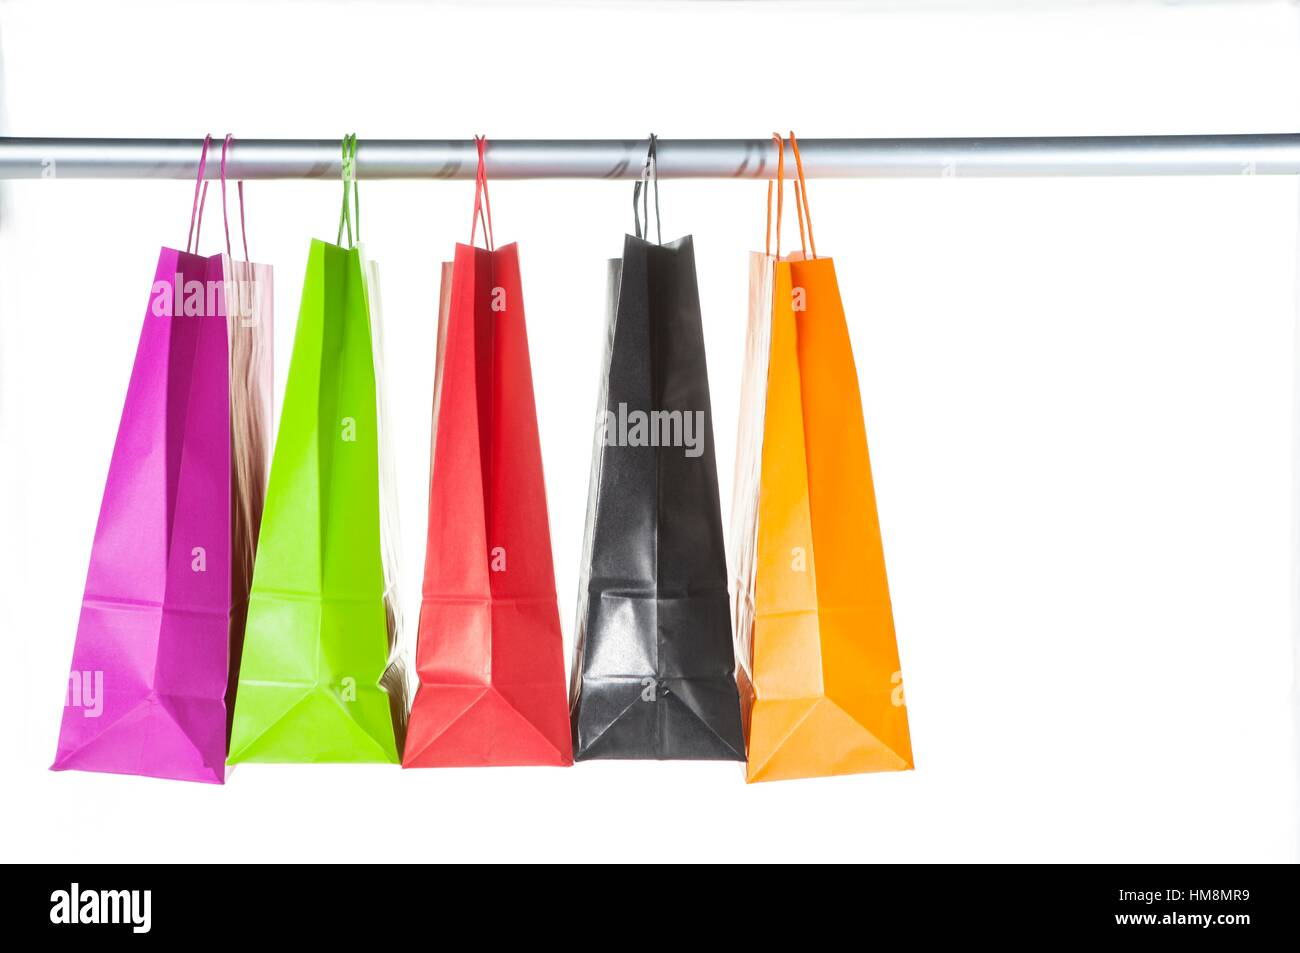 colorful bags hanging on a bar,.estudio cabinet, Valencia - Stock Image